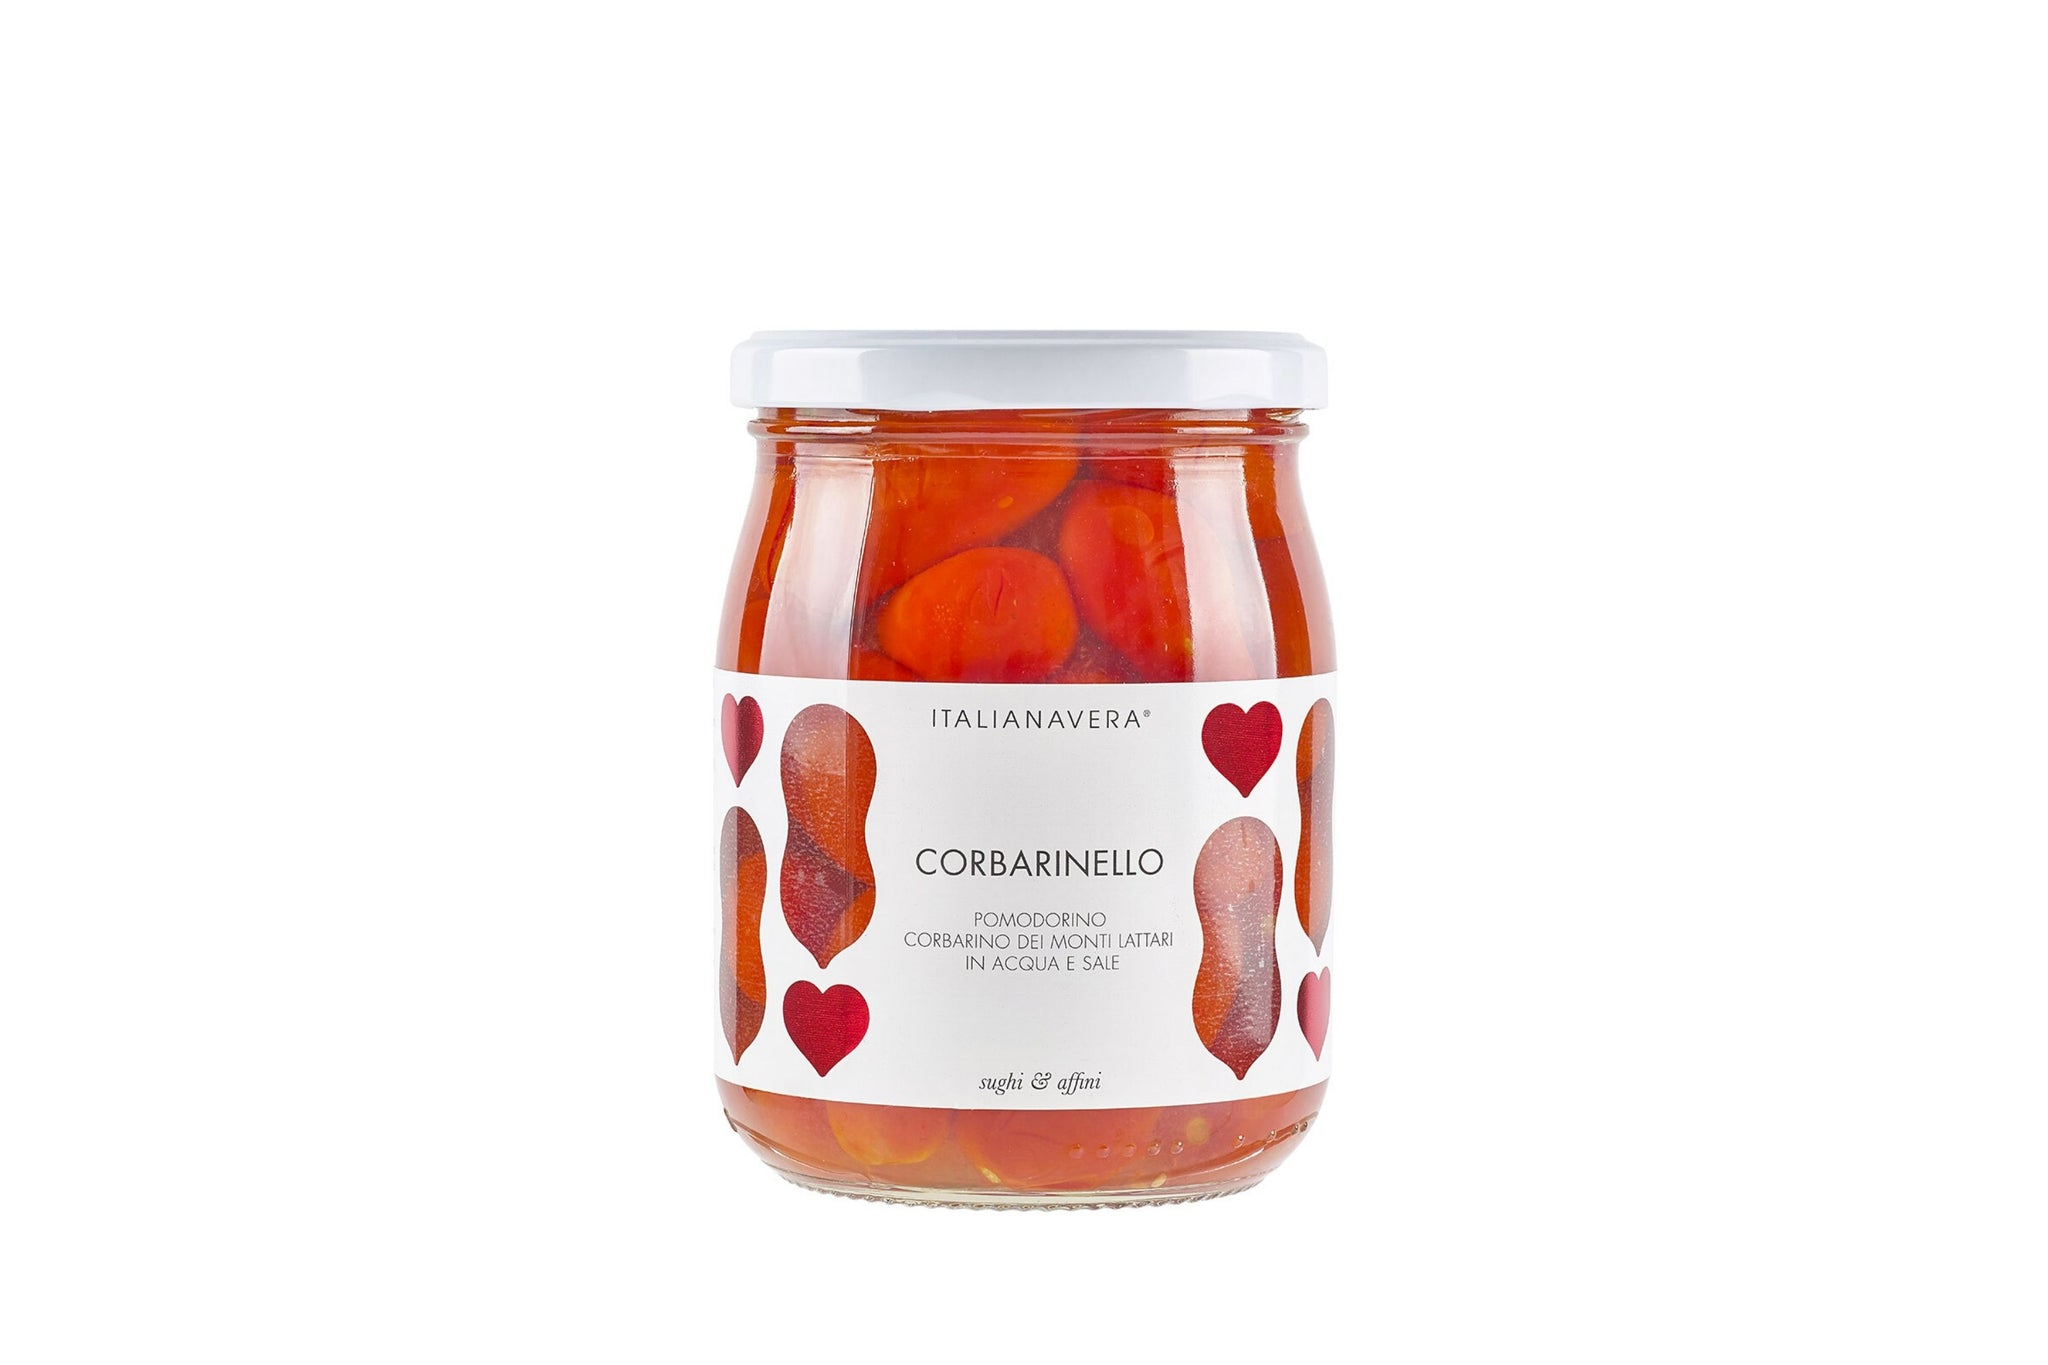 Corbarinello Corbarino Tomatoes from the Lattari Mountains 580g